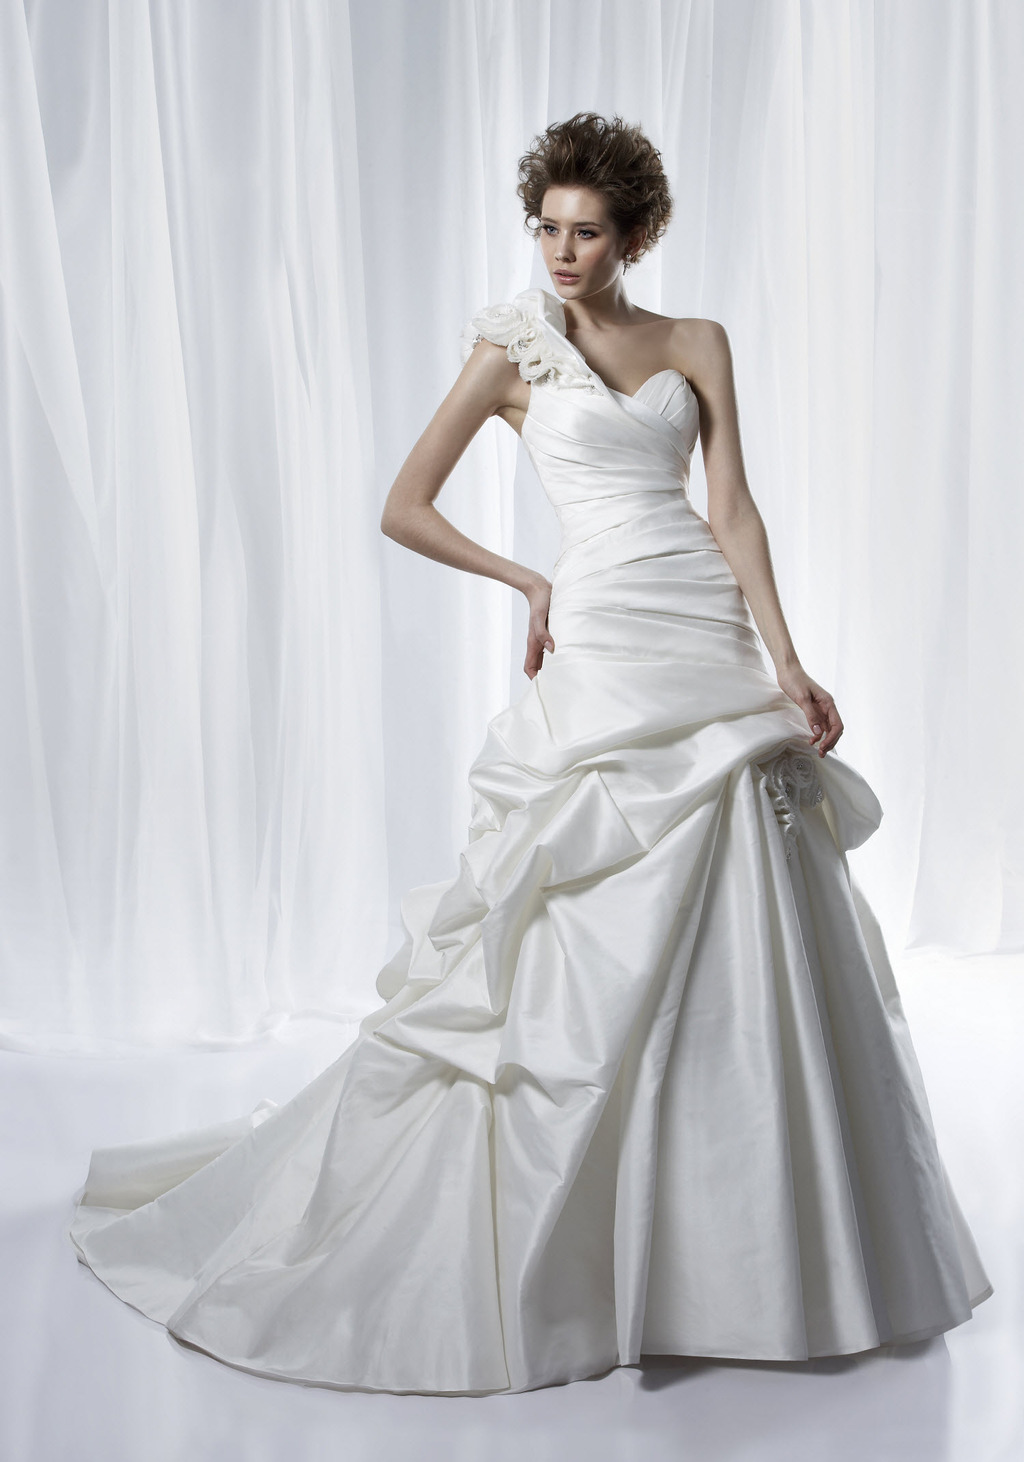 Classic one-shoulder ivory drop-waist ball gown wedding dress with modern bustle